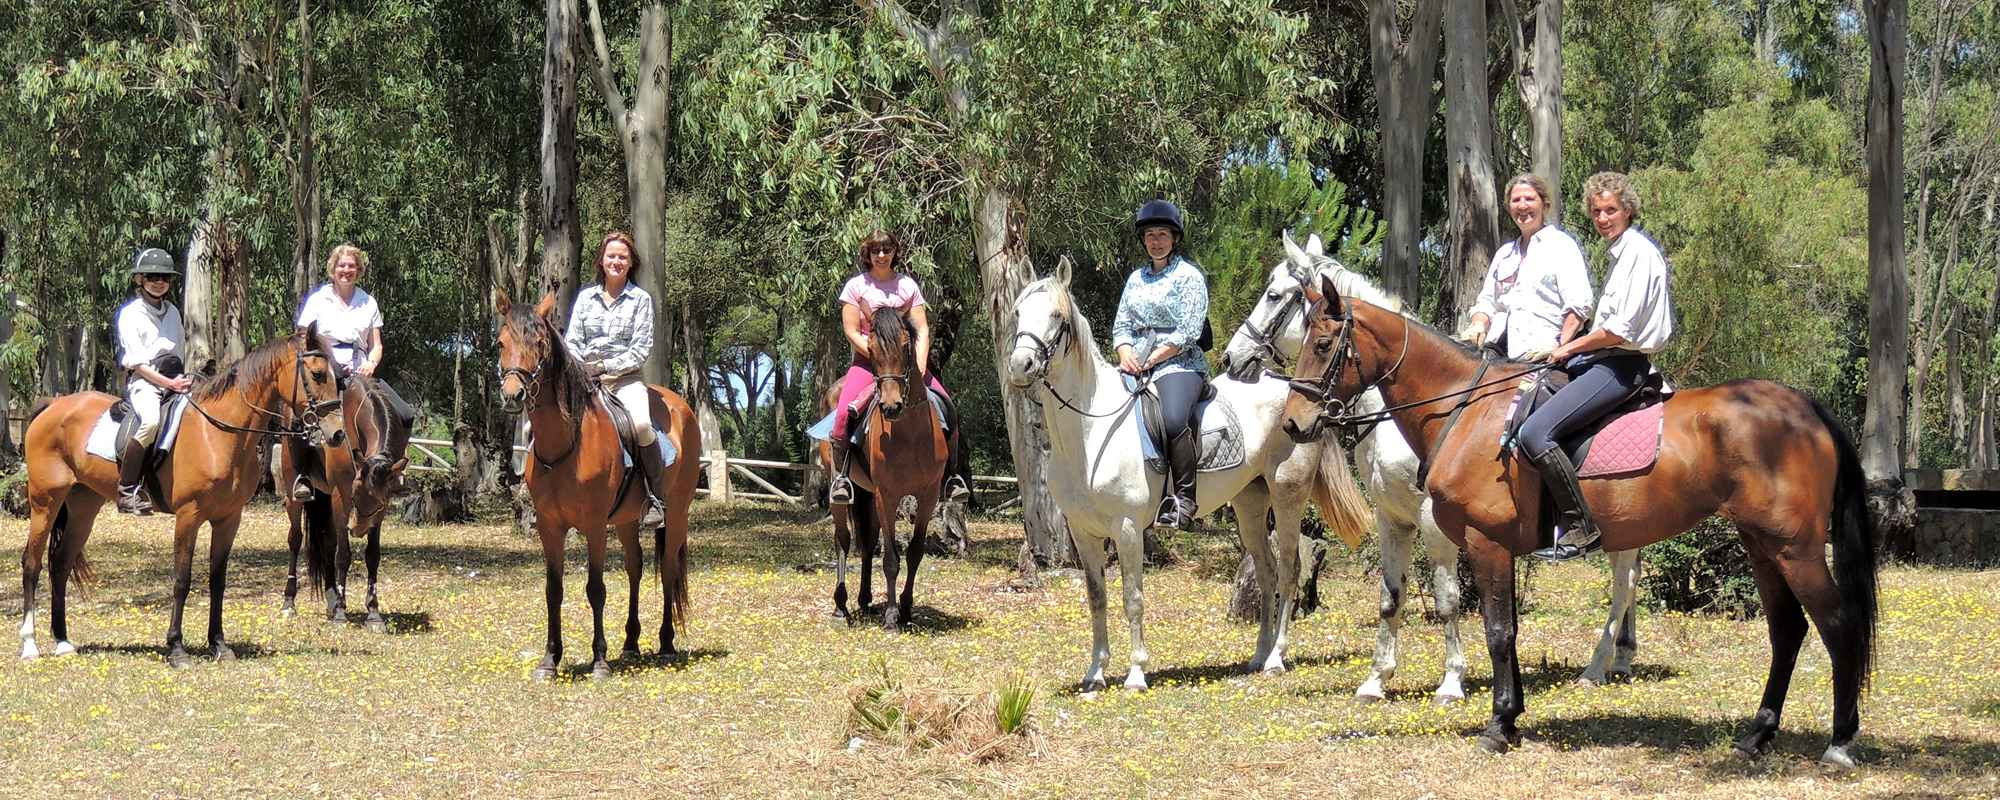 Horse riding vacation based in a beautiful pine forest in Andalusia.